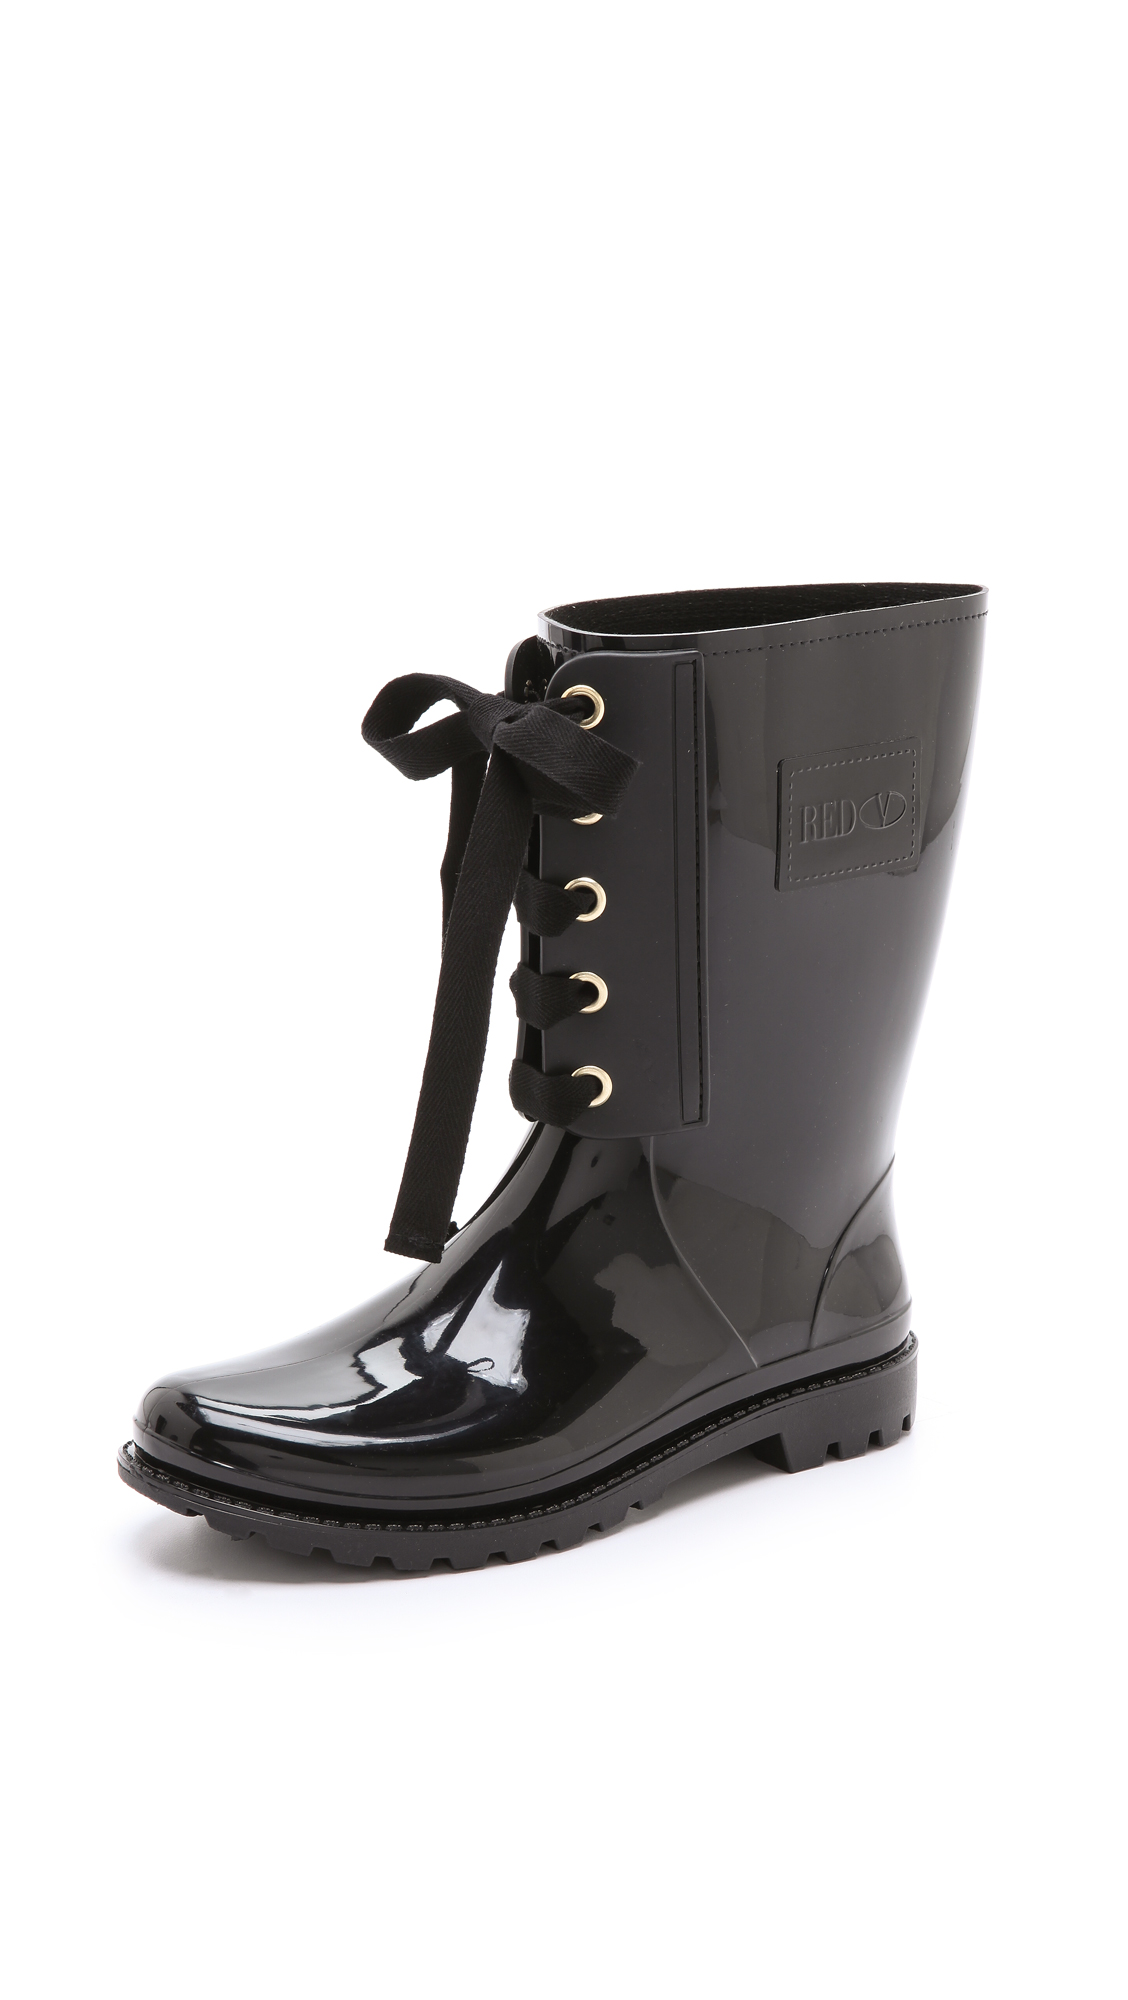 Black Lace Up Rain Boots - Boot Hto